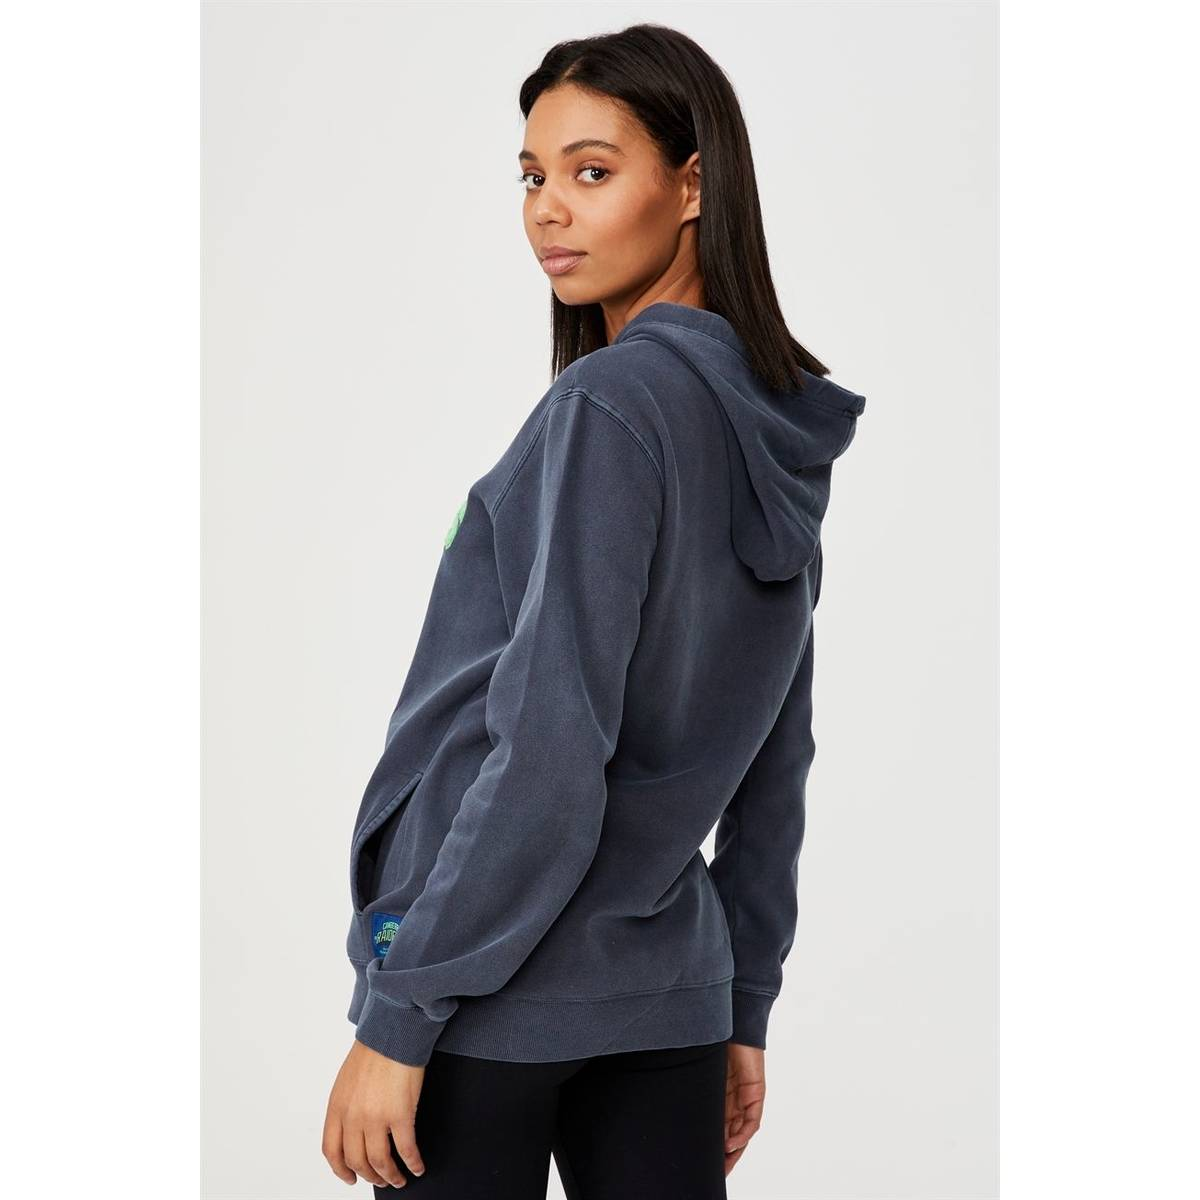 NRL Womens Embroidered Chenille Hoodie2